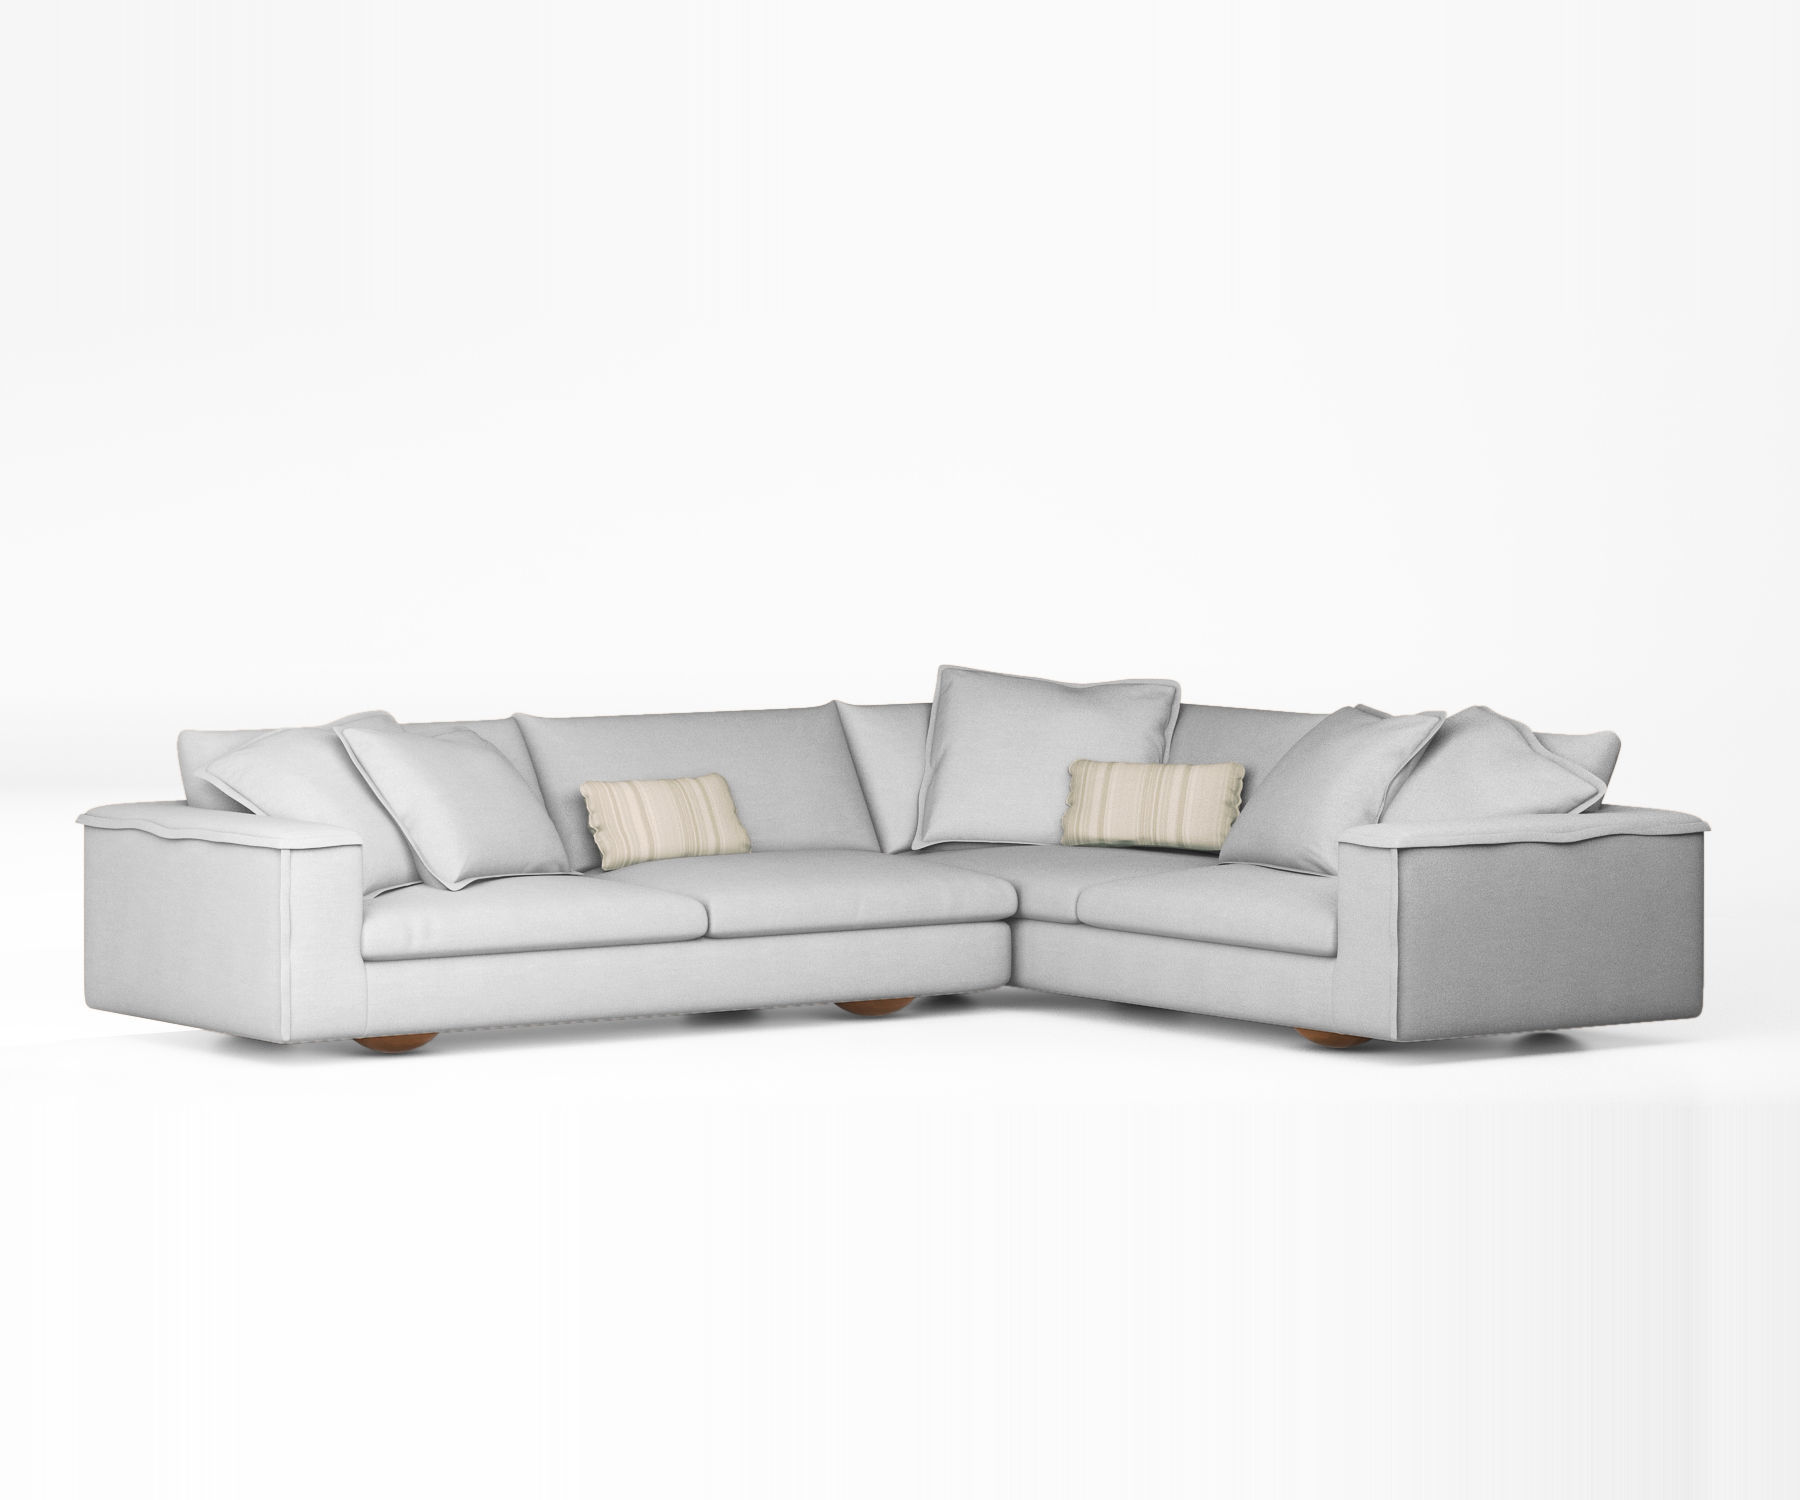 Sofa L Images Sunny L Sofa By Jardan 3d Model